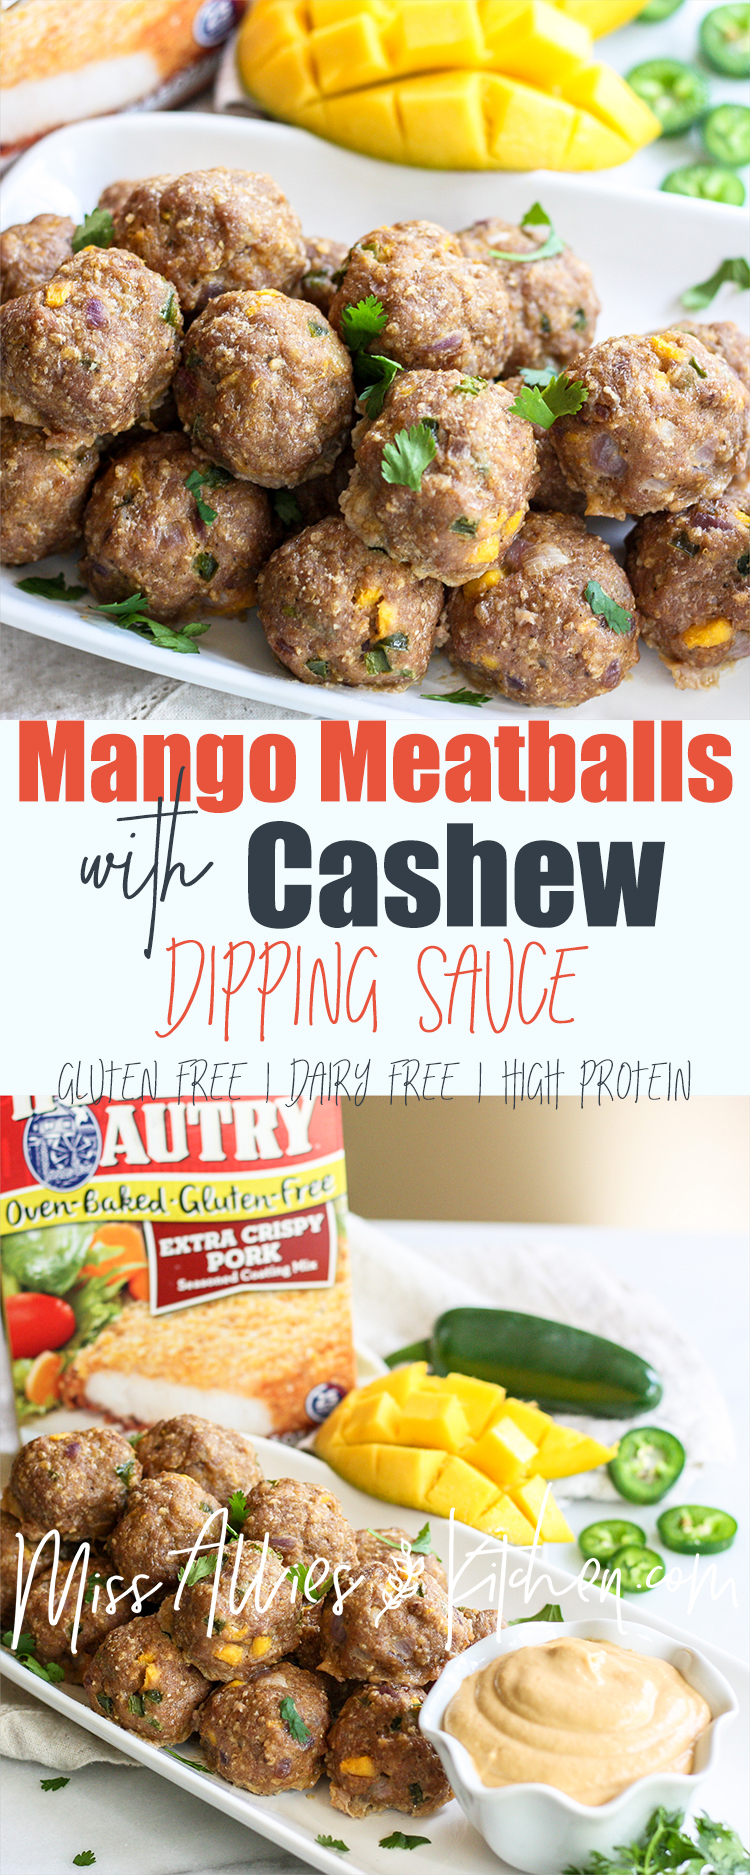 Gluten Free Mango Meatballs with Cashew Dipping Sauce